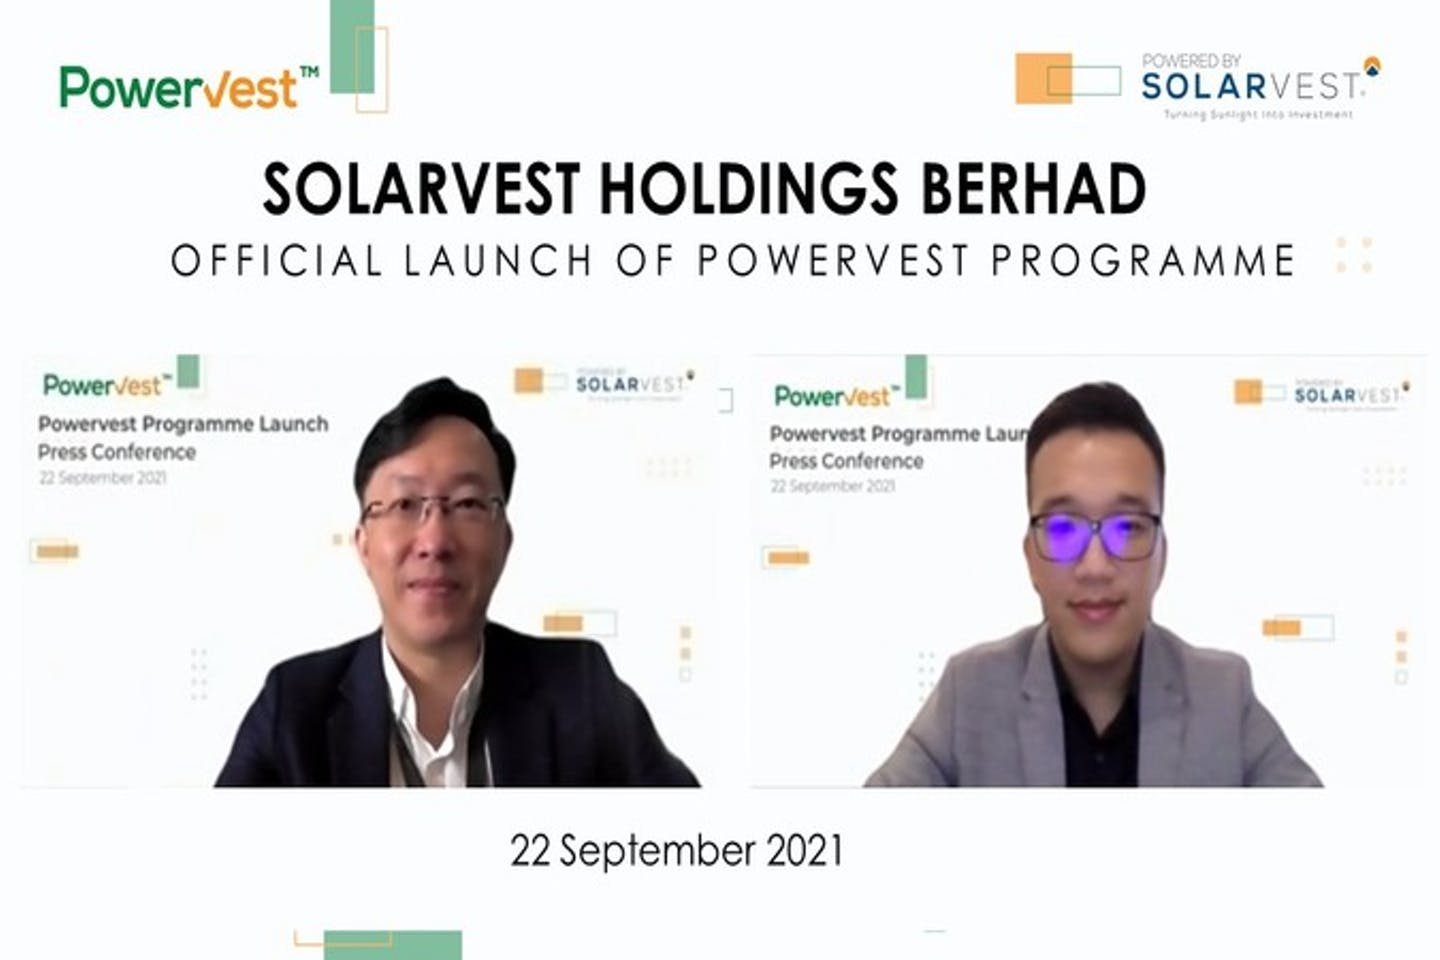 Powervest – a customised solar financing solution by Solarharvest